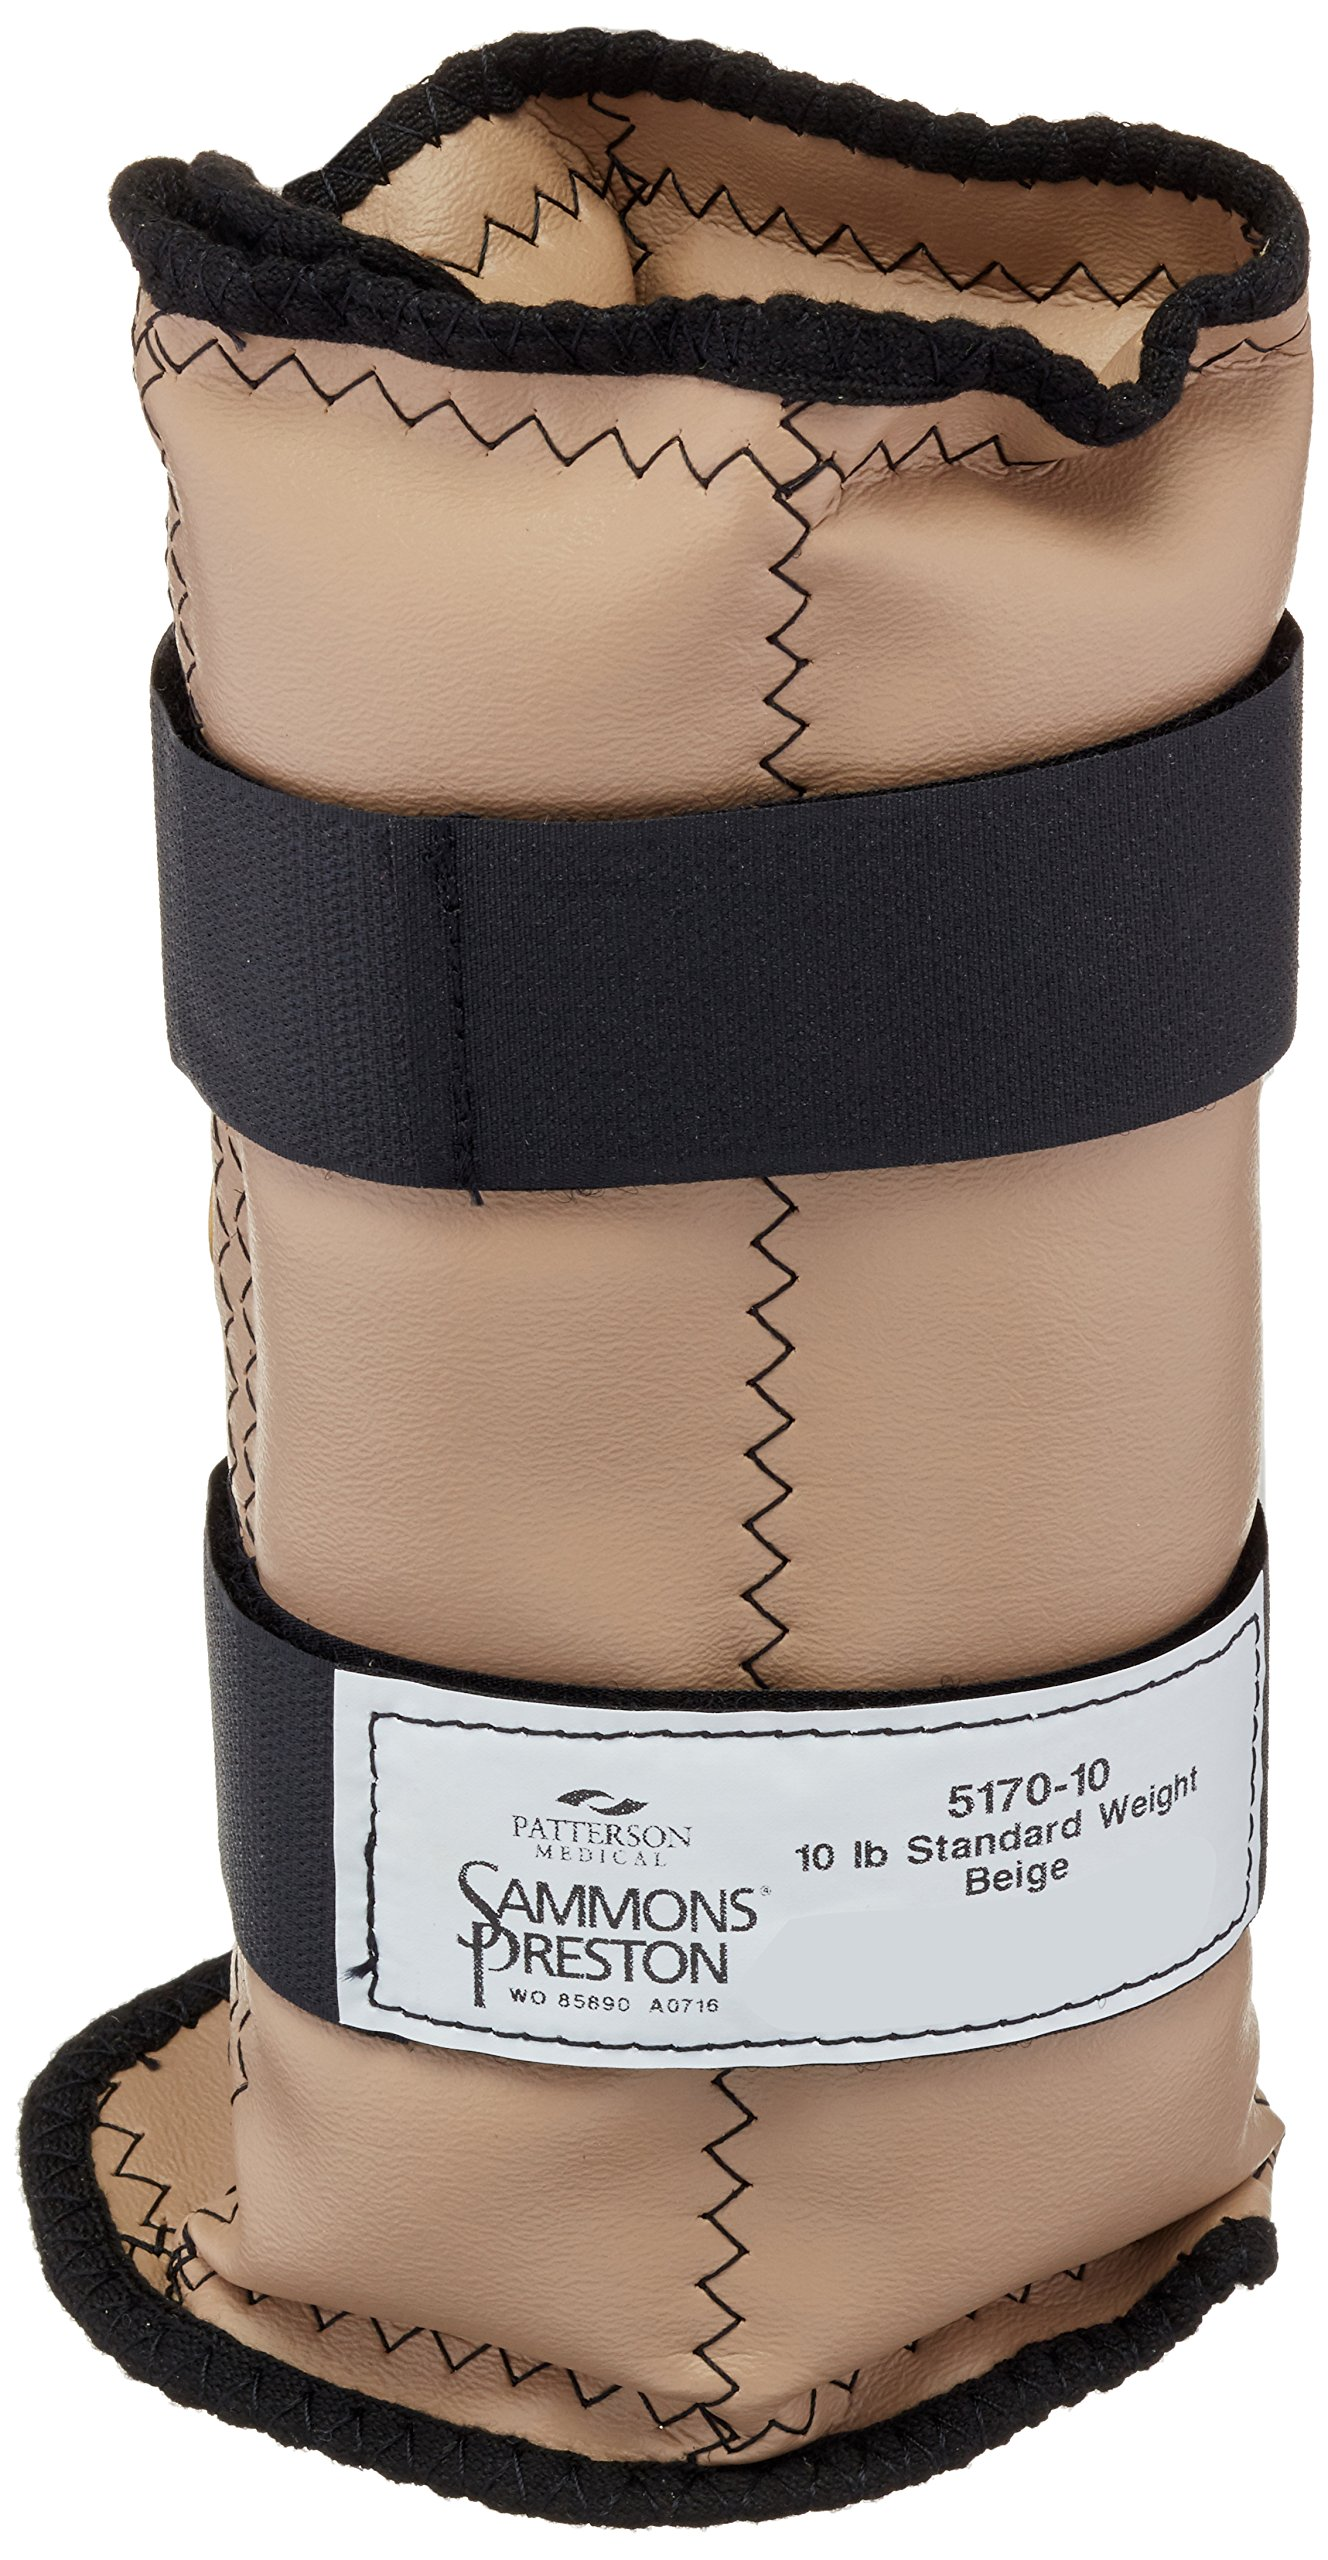 Sammons Preston Cuff Weight, 10 lb, Beige, 2 Straps with D-Ring Closure, Grommet for Easy Hanging, Steel Ankle & Wrist Weights are Lead Free, Exercise Tool for Strength Building & Injury Rehab